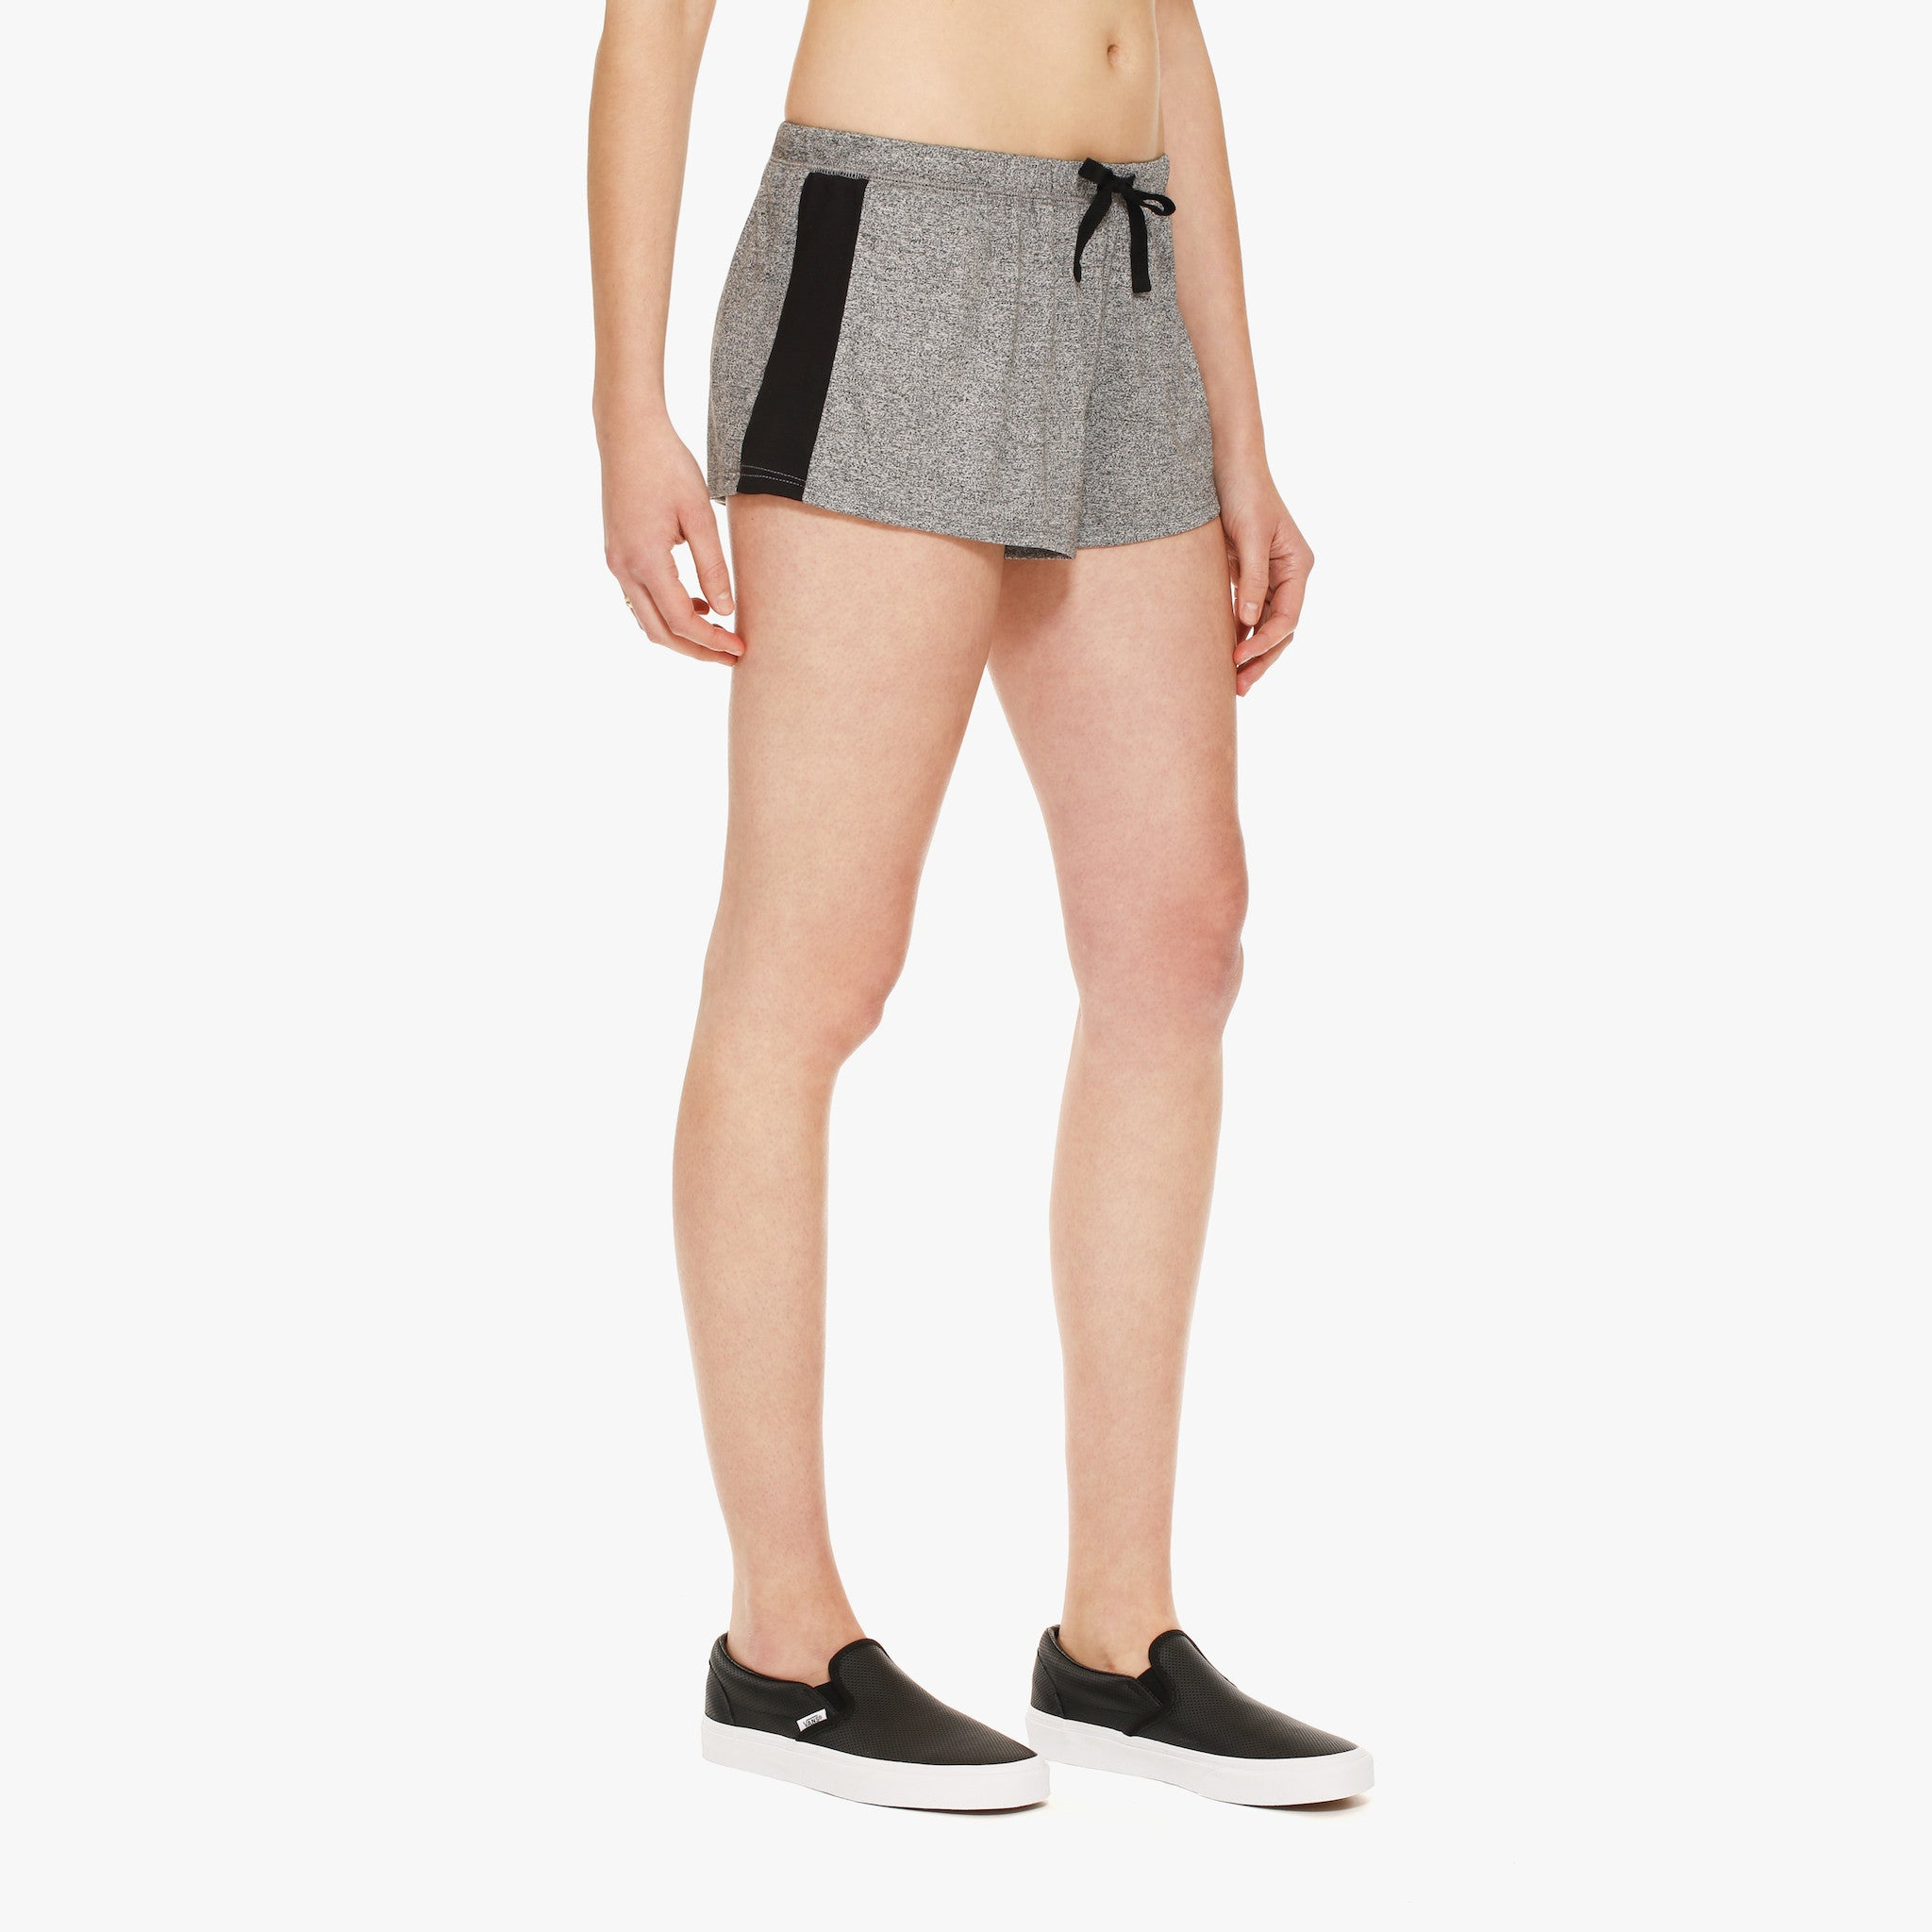 Women's Grey Boxer Short